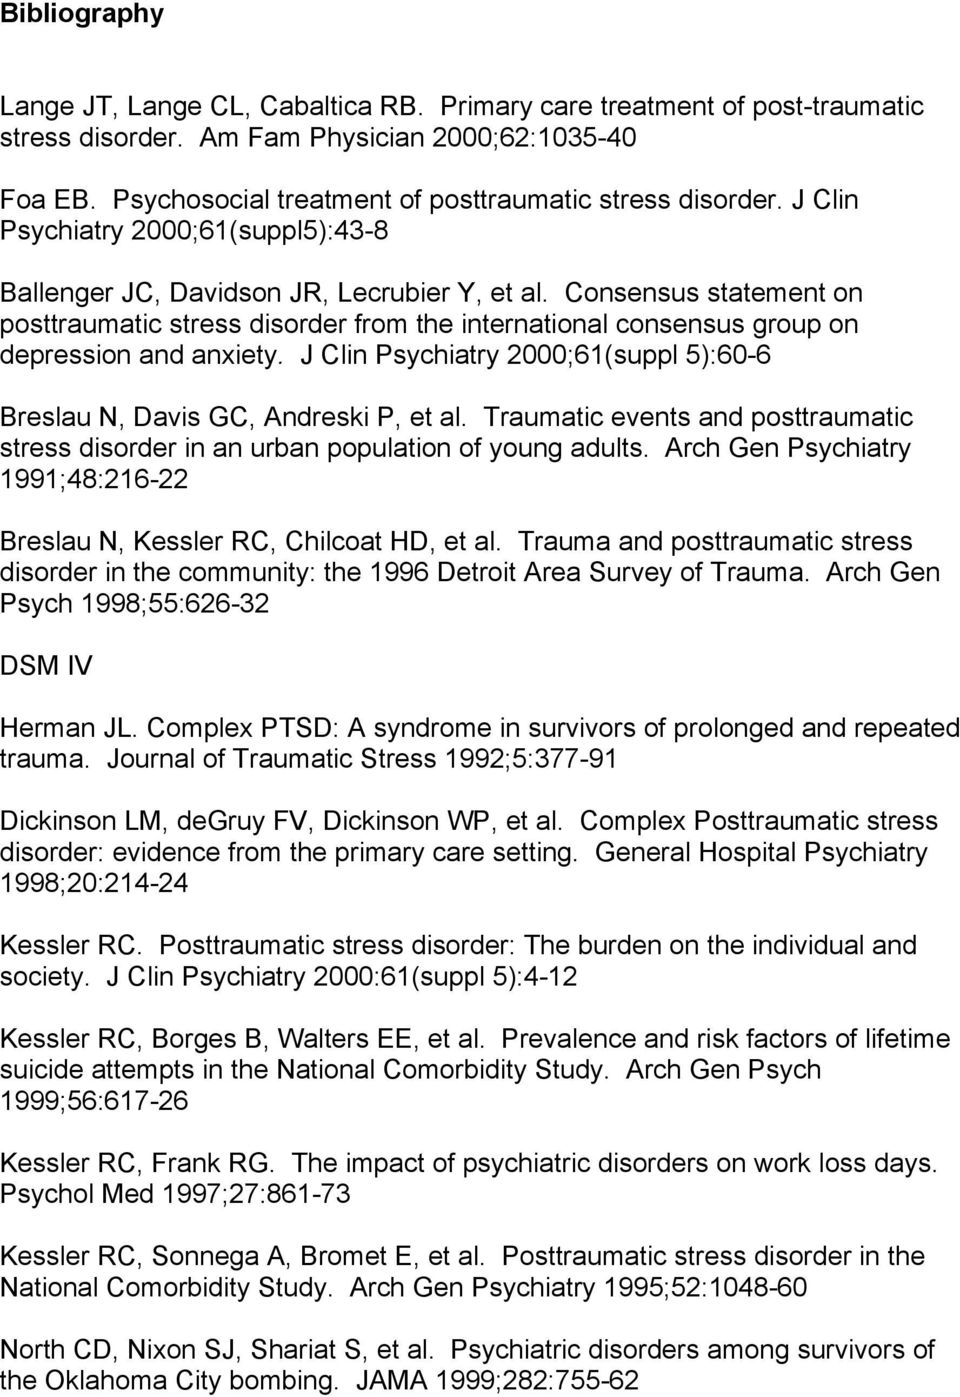 Consensus statement on posttraumatic stress disorder from the international consensus group on depression and anxiety. J Clin Psychiatry 2000;61(suppl 5):60-6 Breslau N, Davis GC, Andreski P, et al.